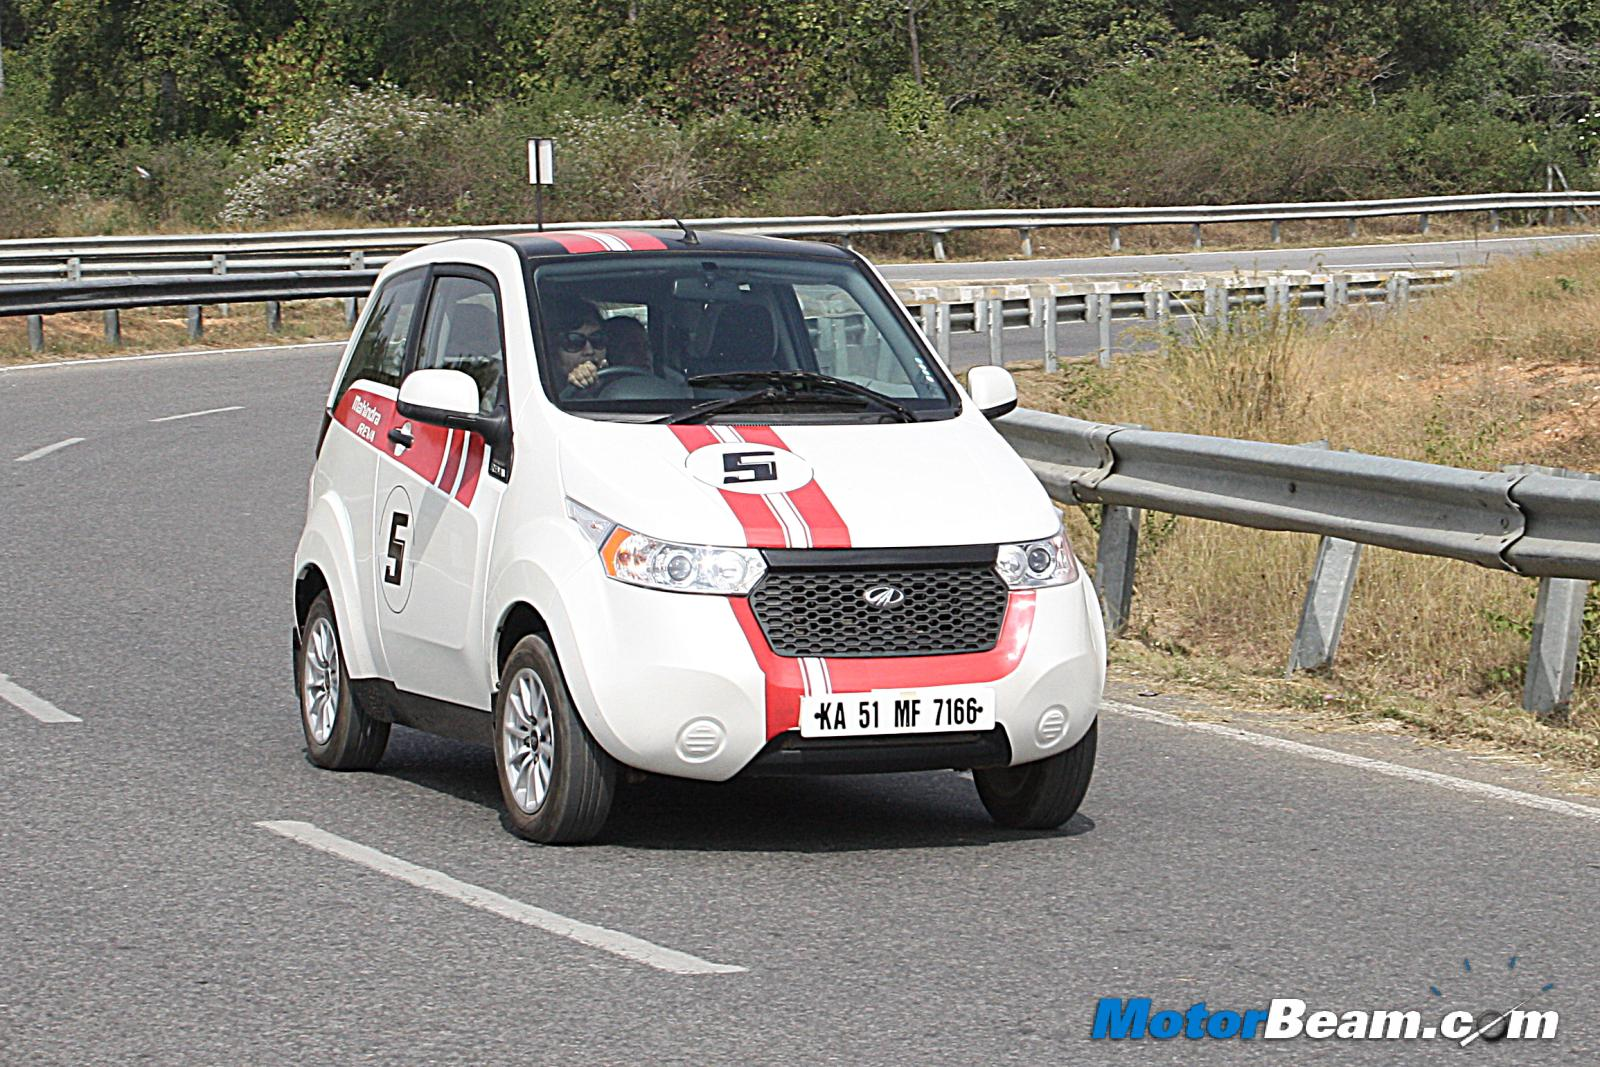 2015 Mahindra e2o Review